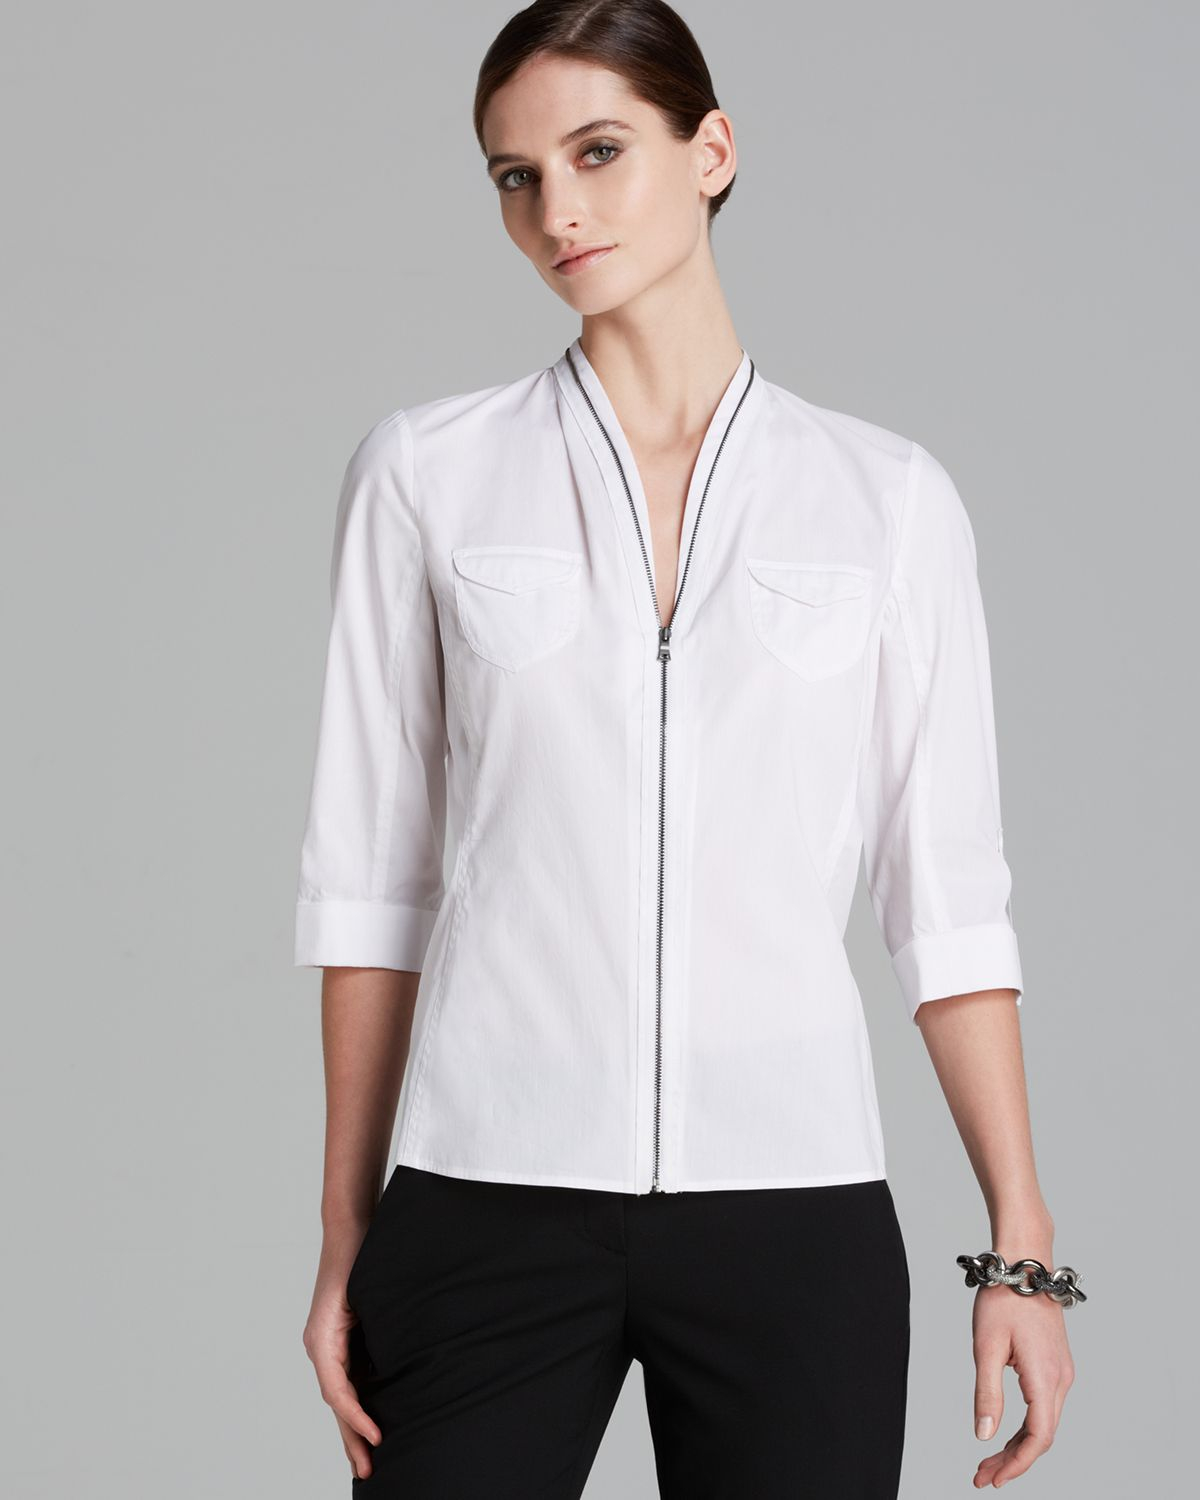 Zip Front Blouse White 66